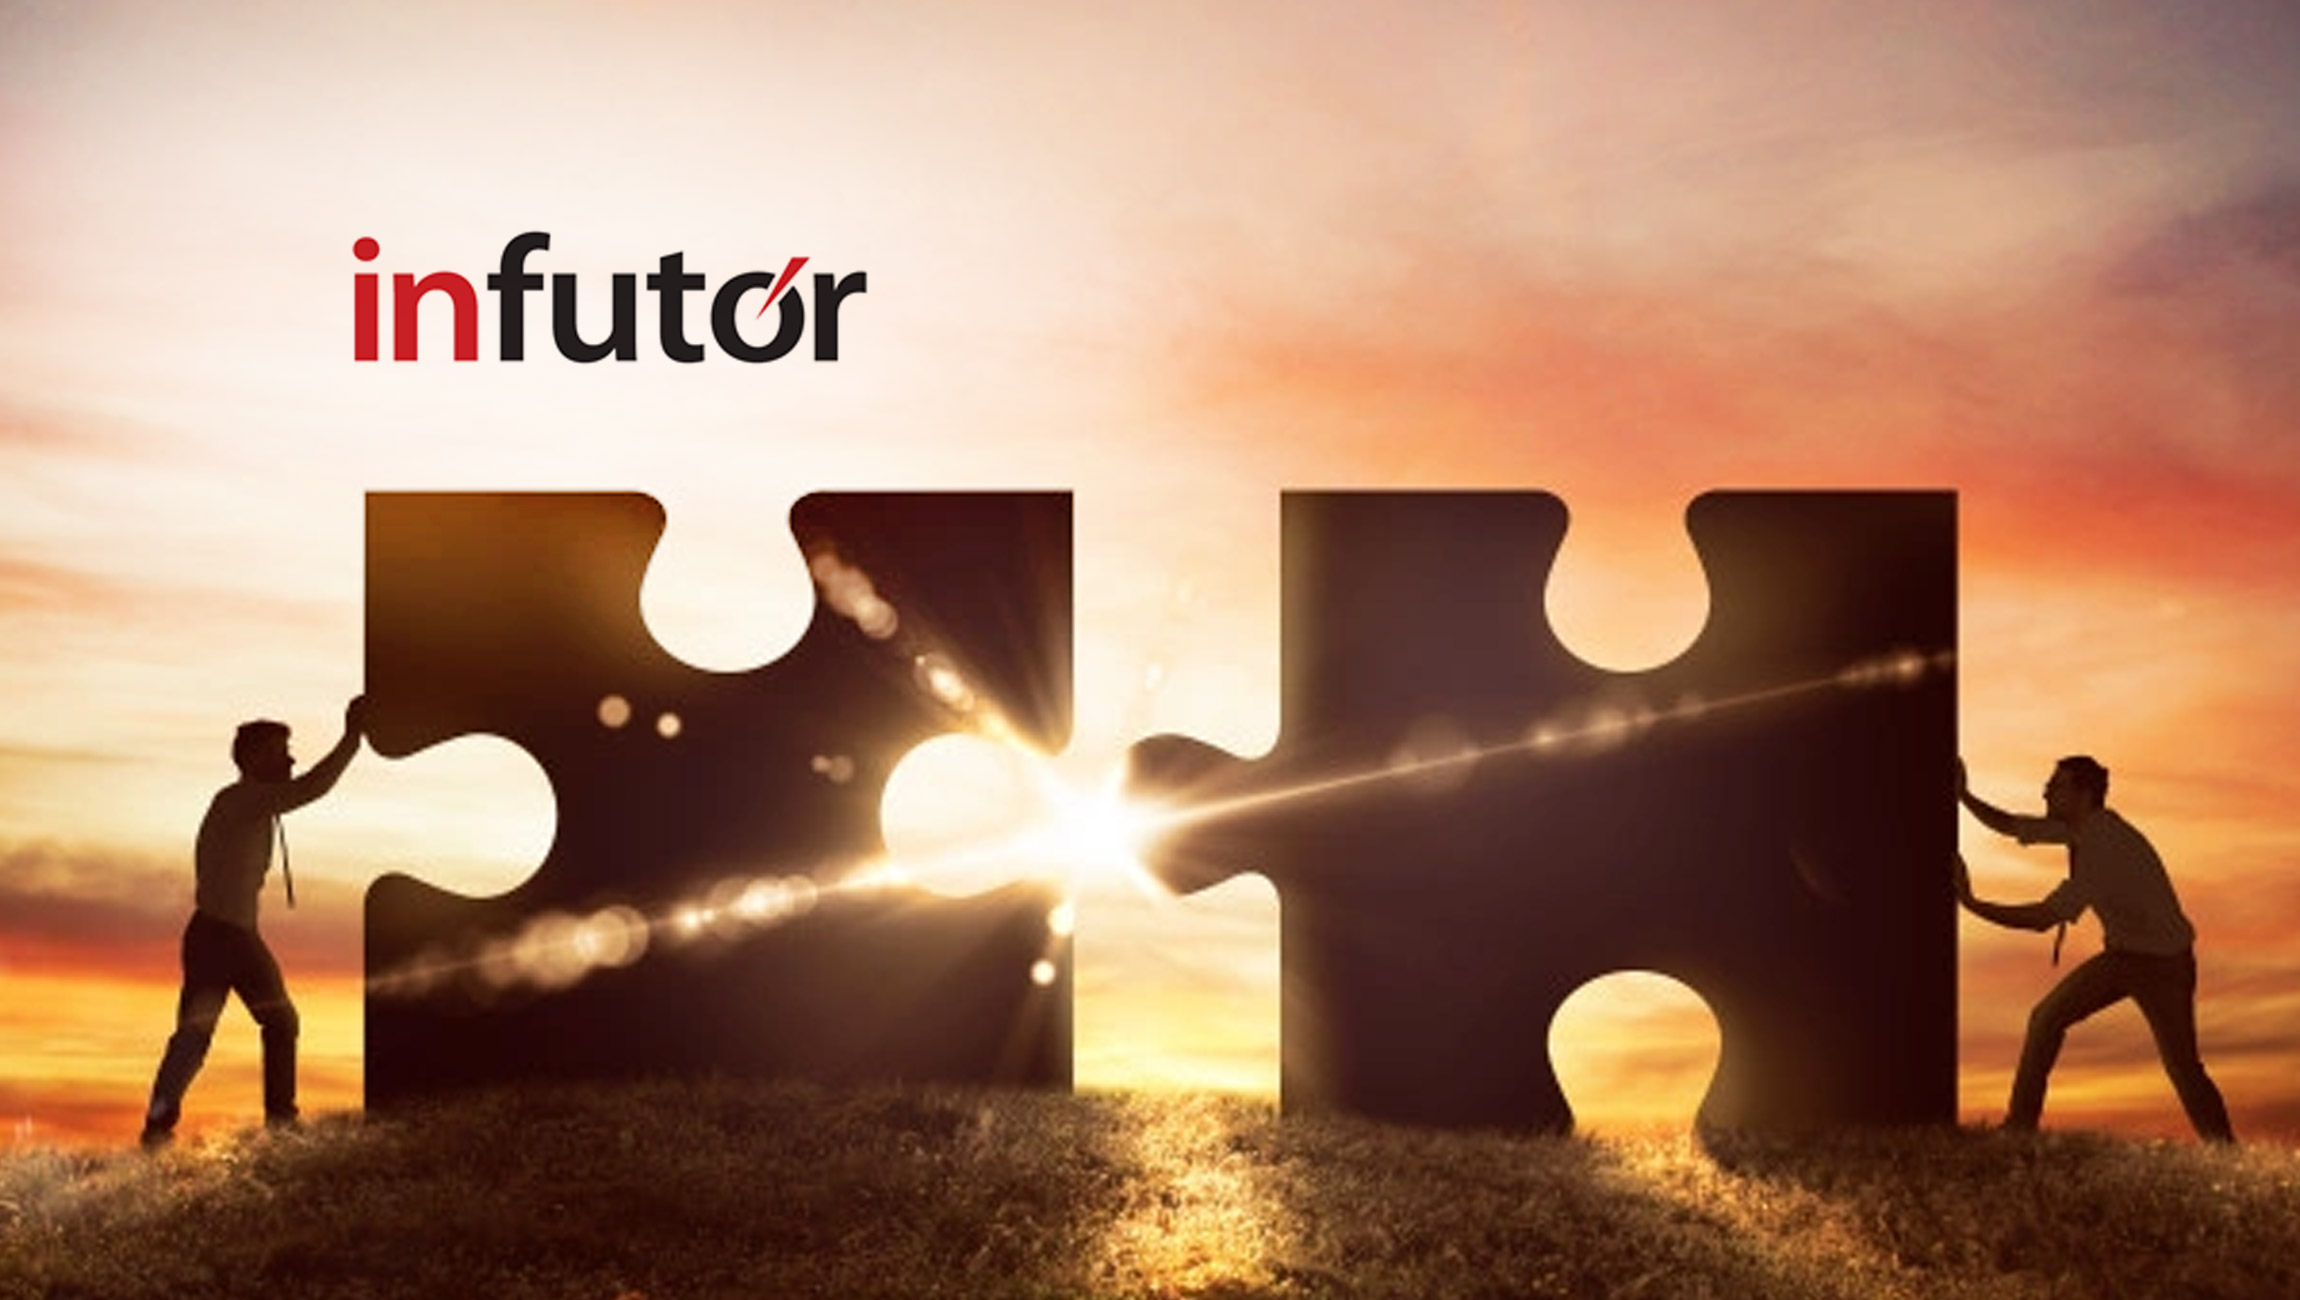 Infutor Joins Unified ID 2.0 to Collaborate on Open-Source Alternative to Third-Party Cookies